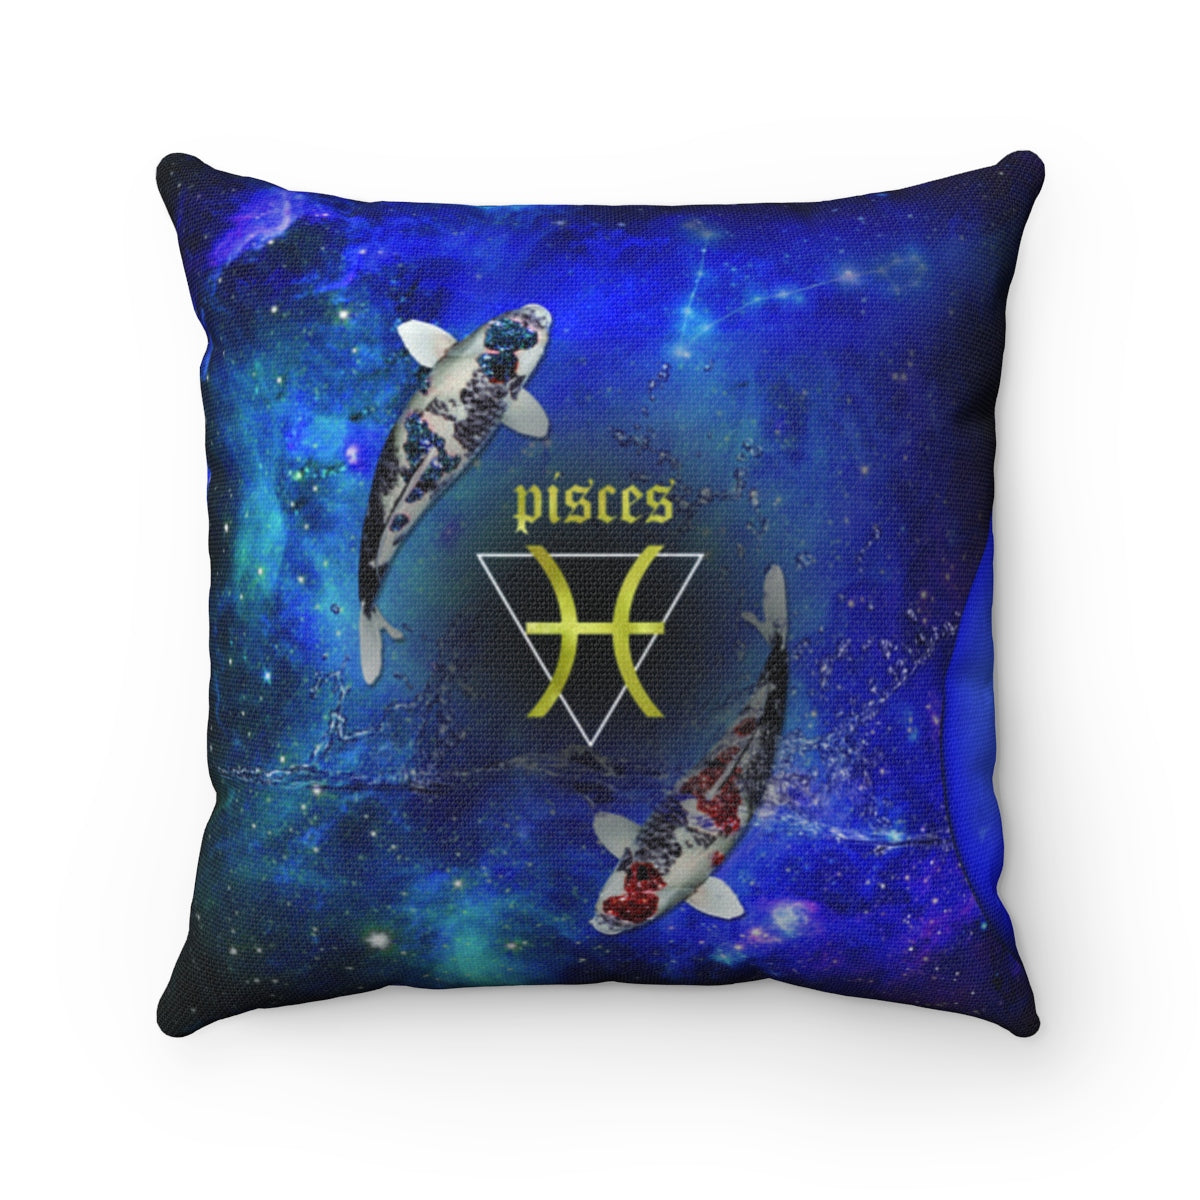 Pisces Pillow - #ChildishZodiac